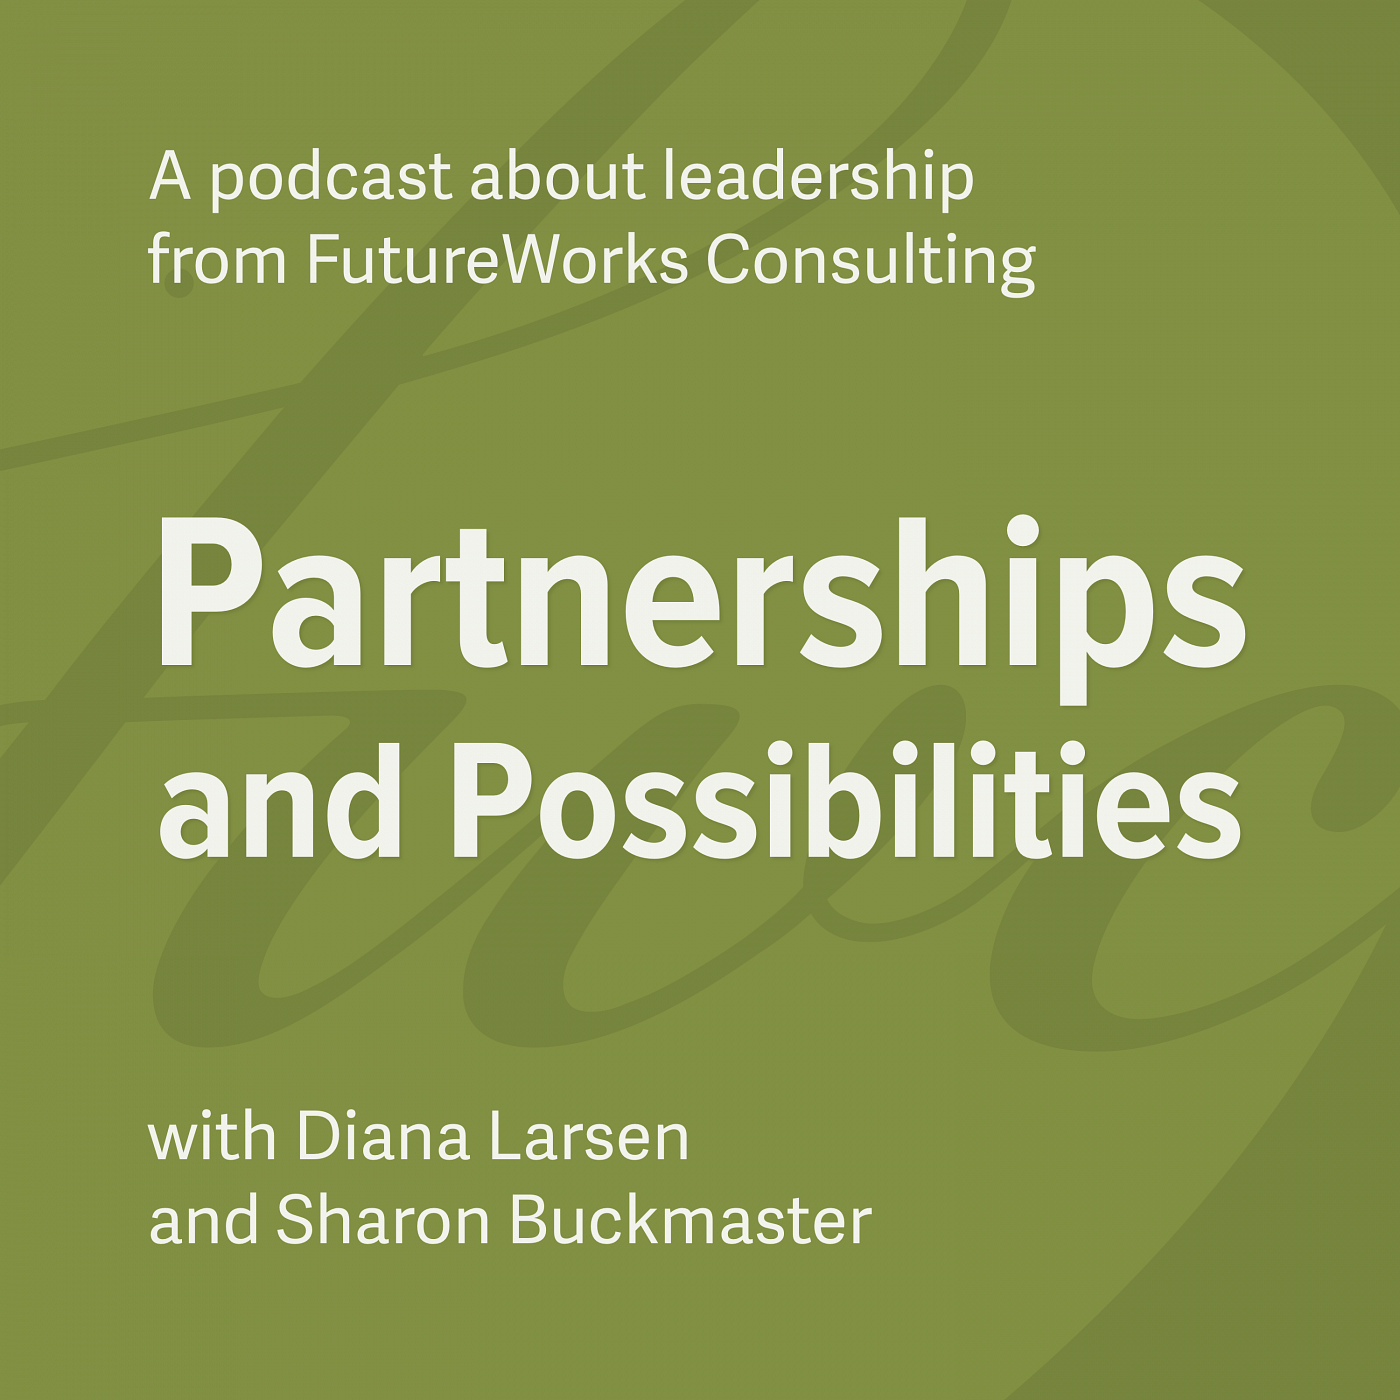 Partnerships and Possibilities Podcast